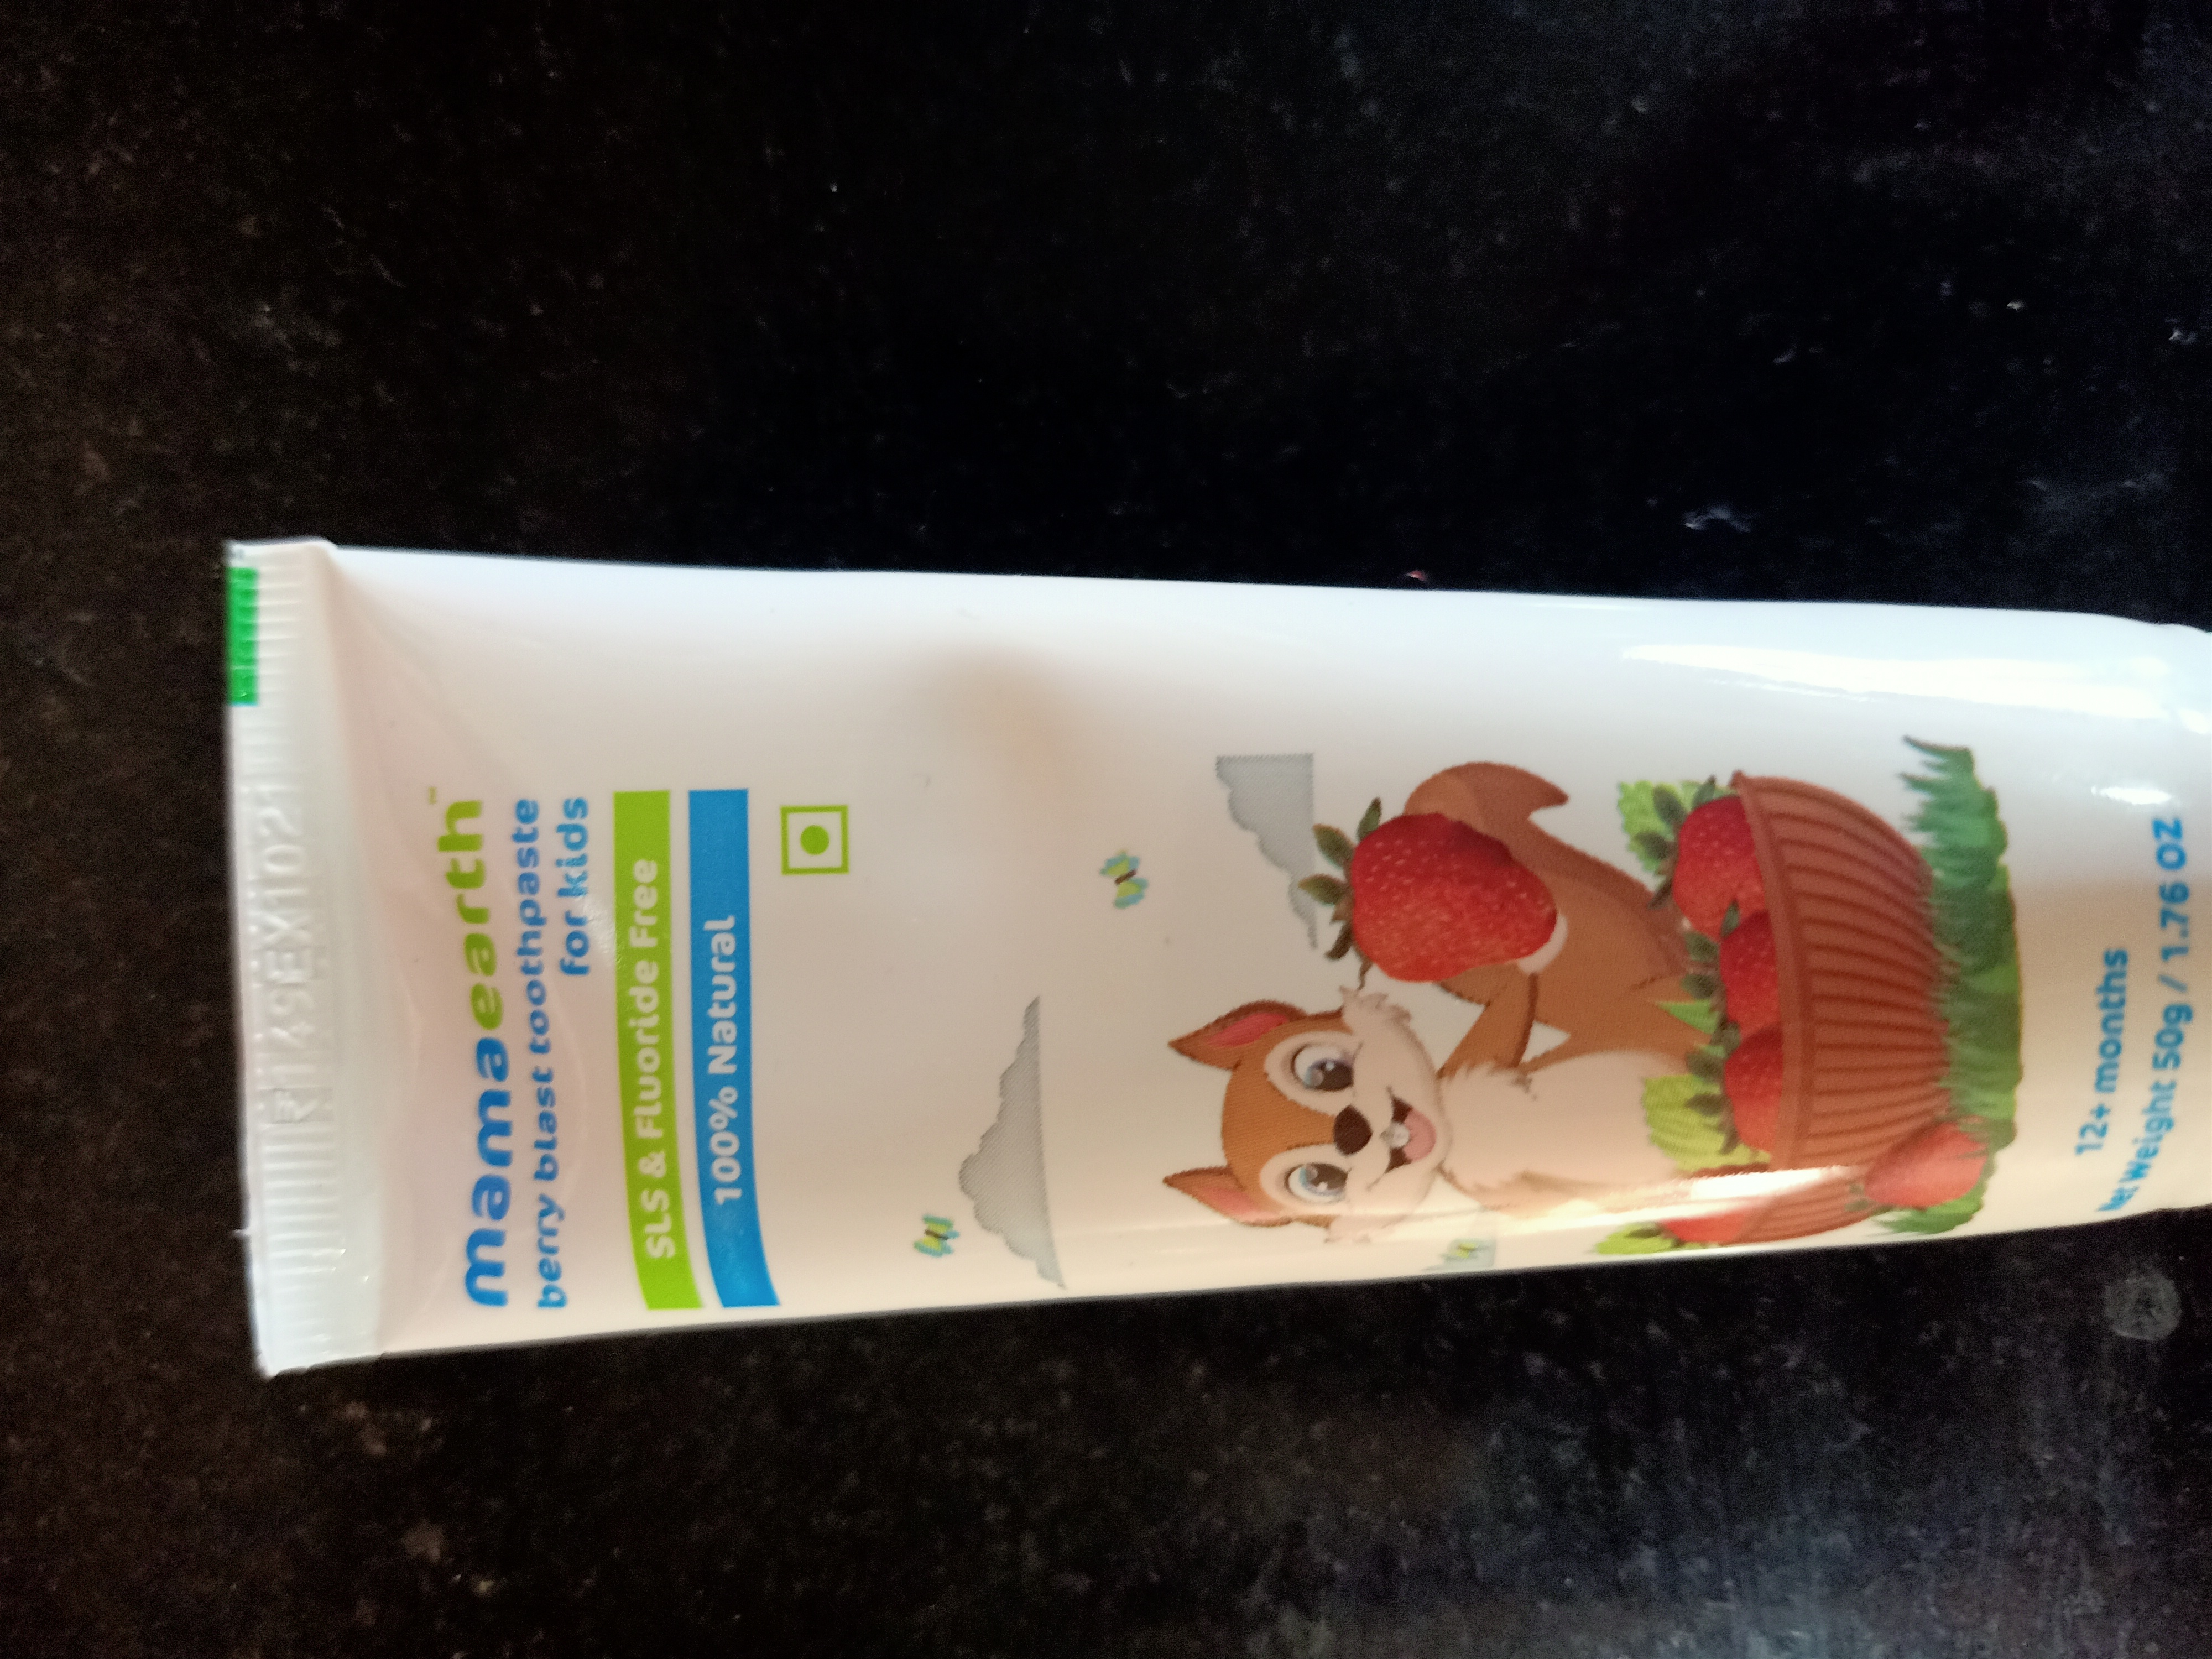 Mamaearth Baby's Natural Berry Blast Toothpaste-Great kids toothpaste-By akki2019